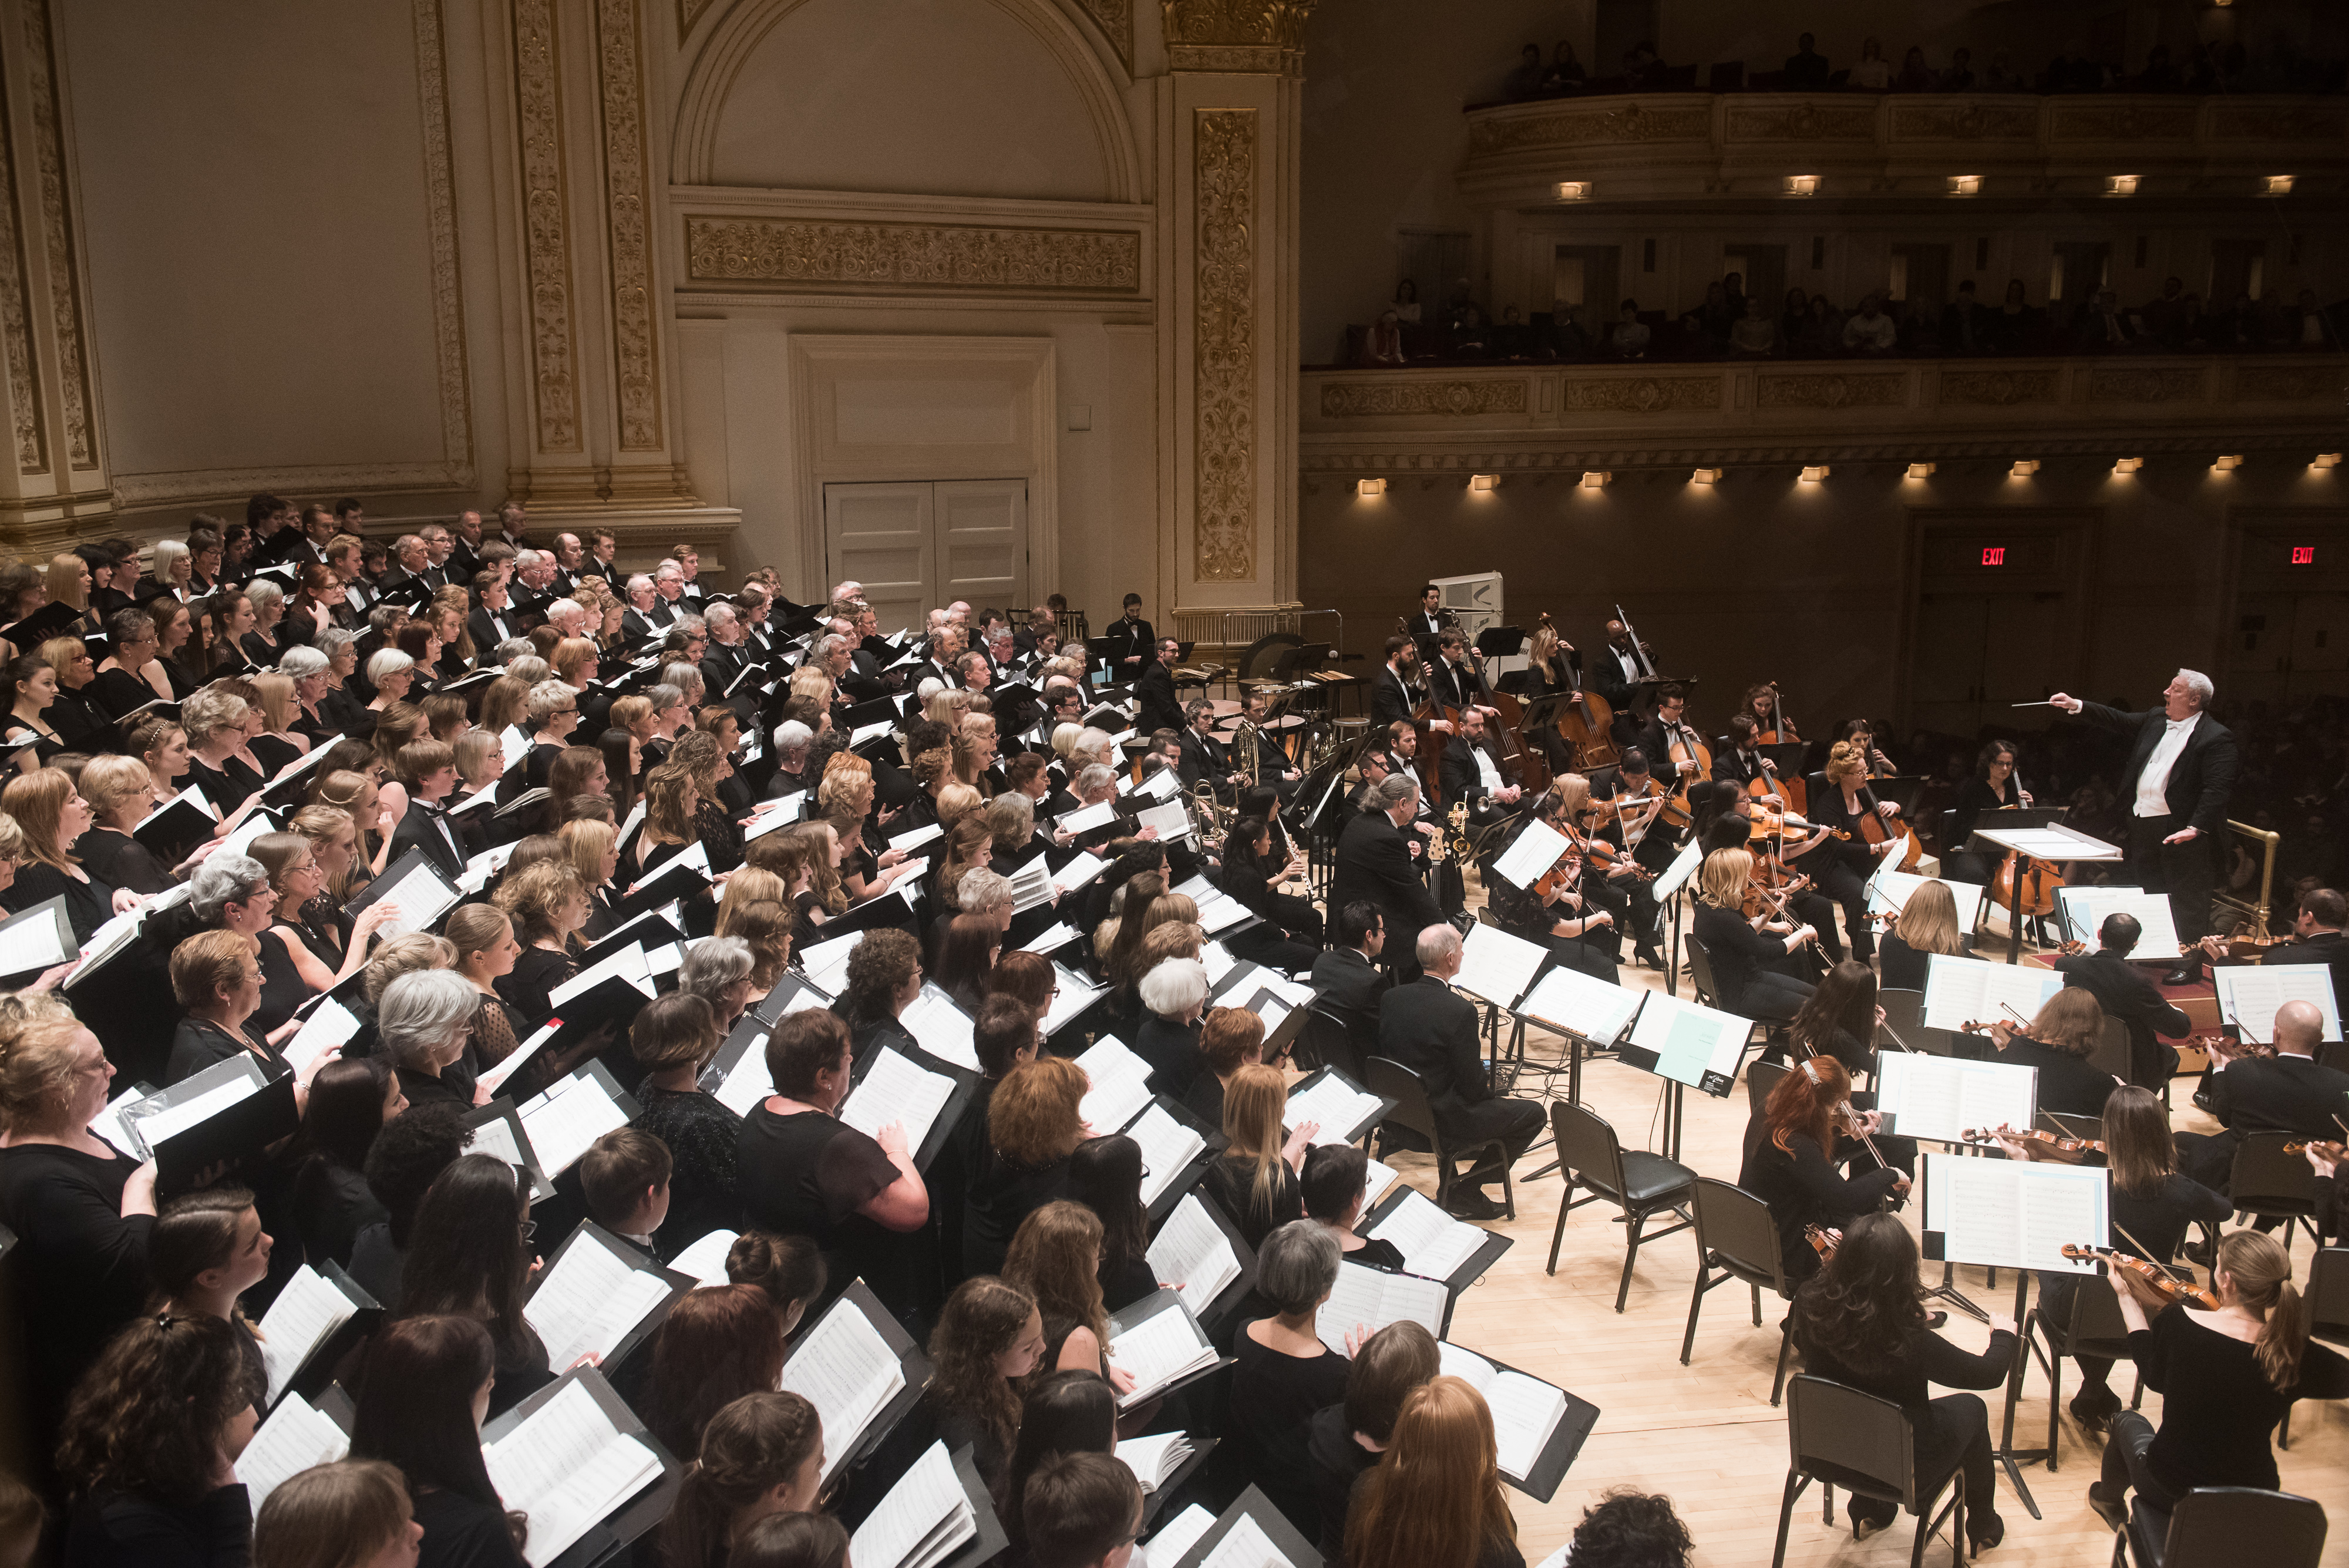 Carnegie Hall Calendar.The Suite Sounds Of Christmas At Carnegie Hall Americans For The Arts